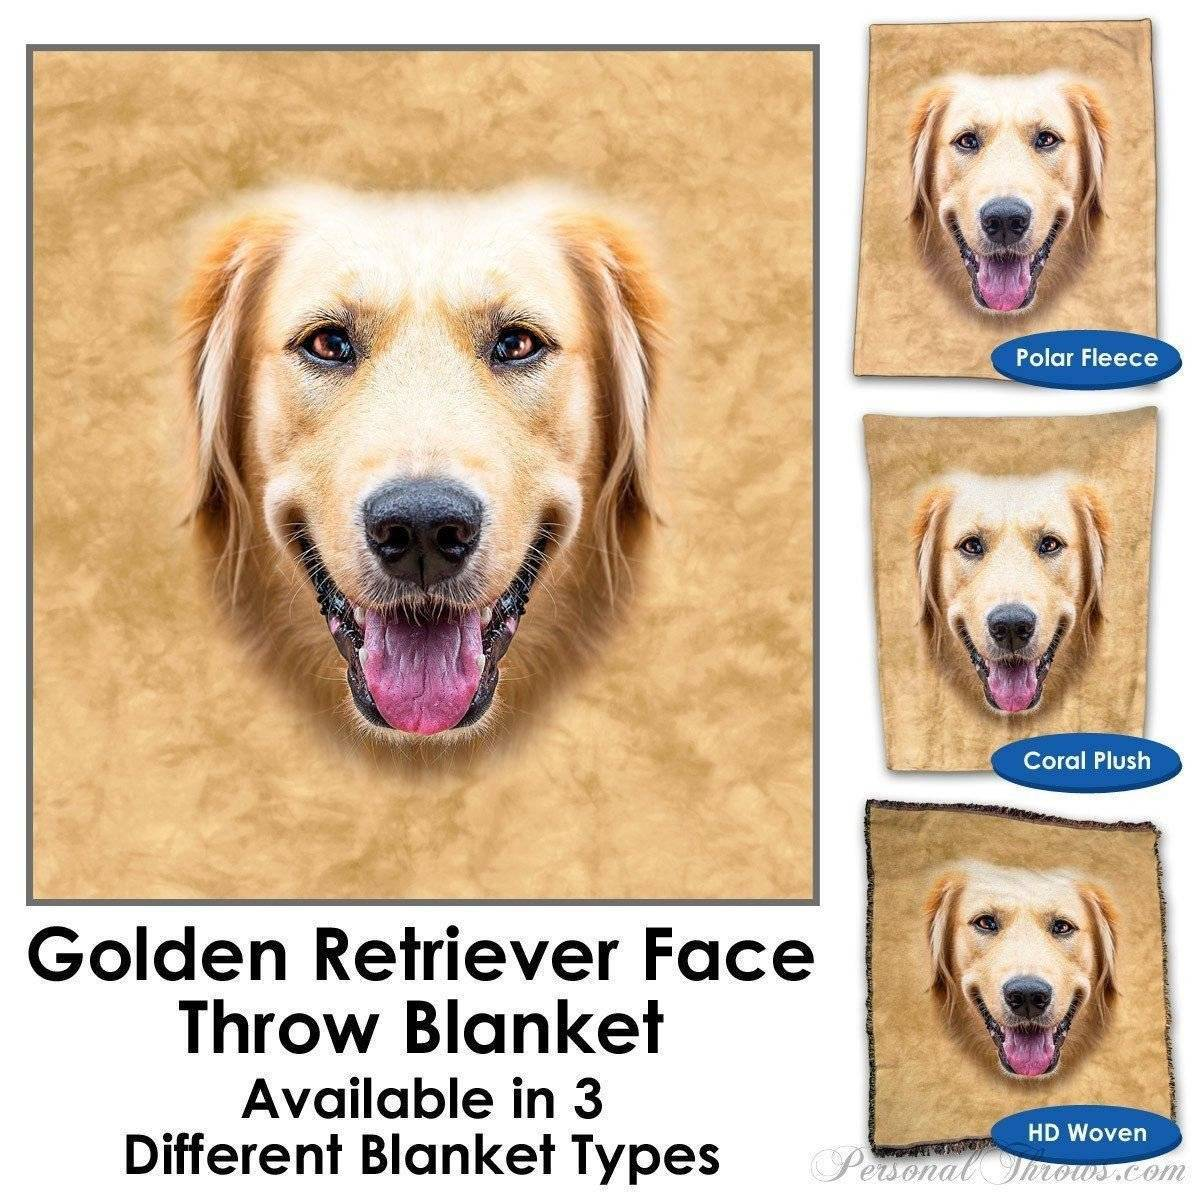 Designer Gifts - Golden Retriever Face Throw Blanket